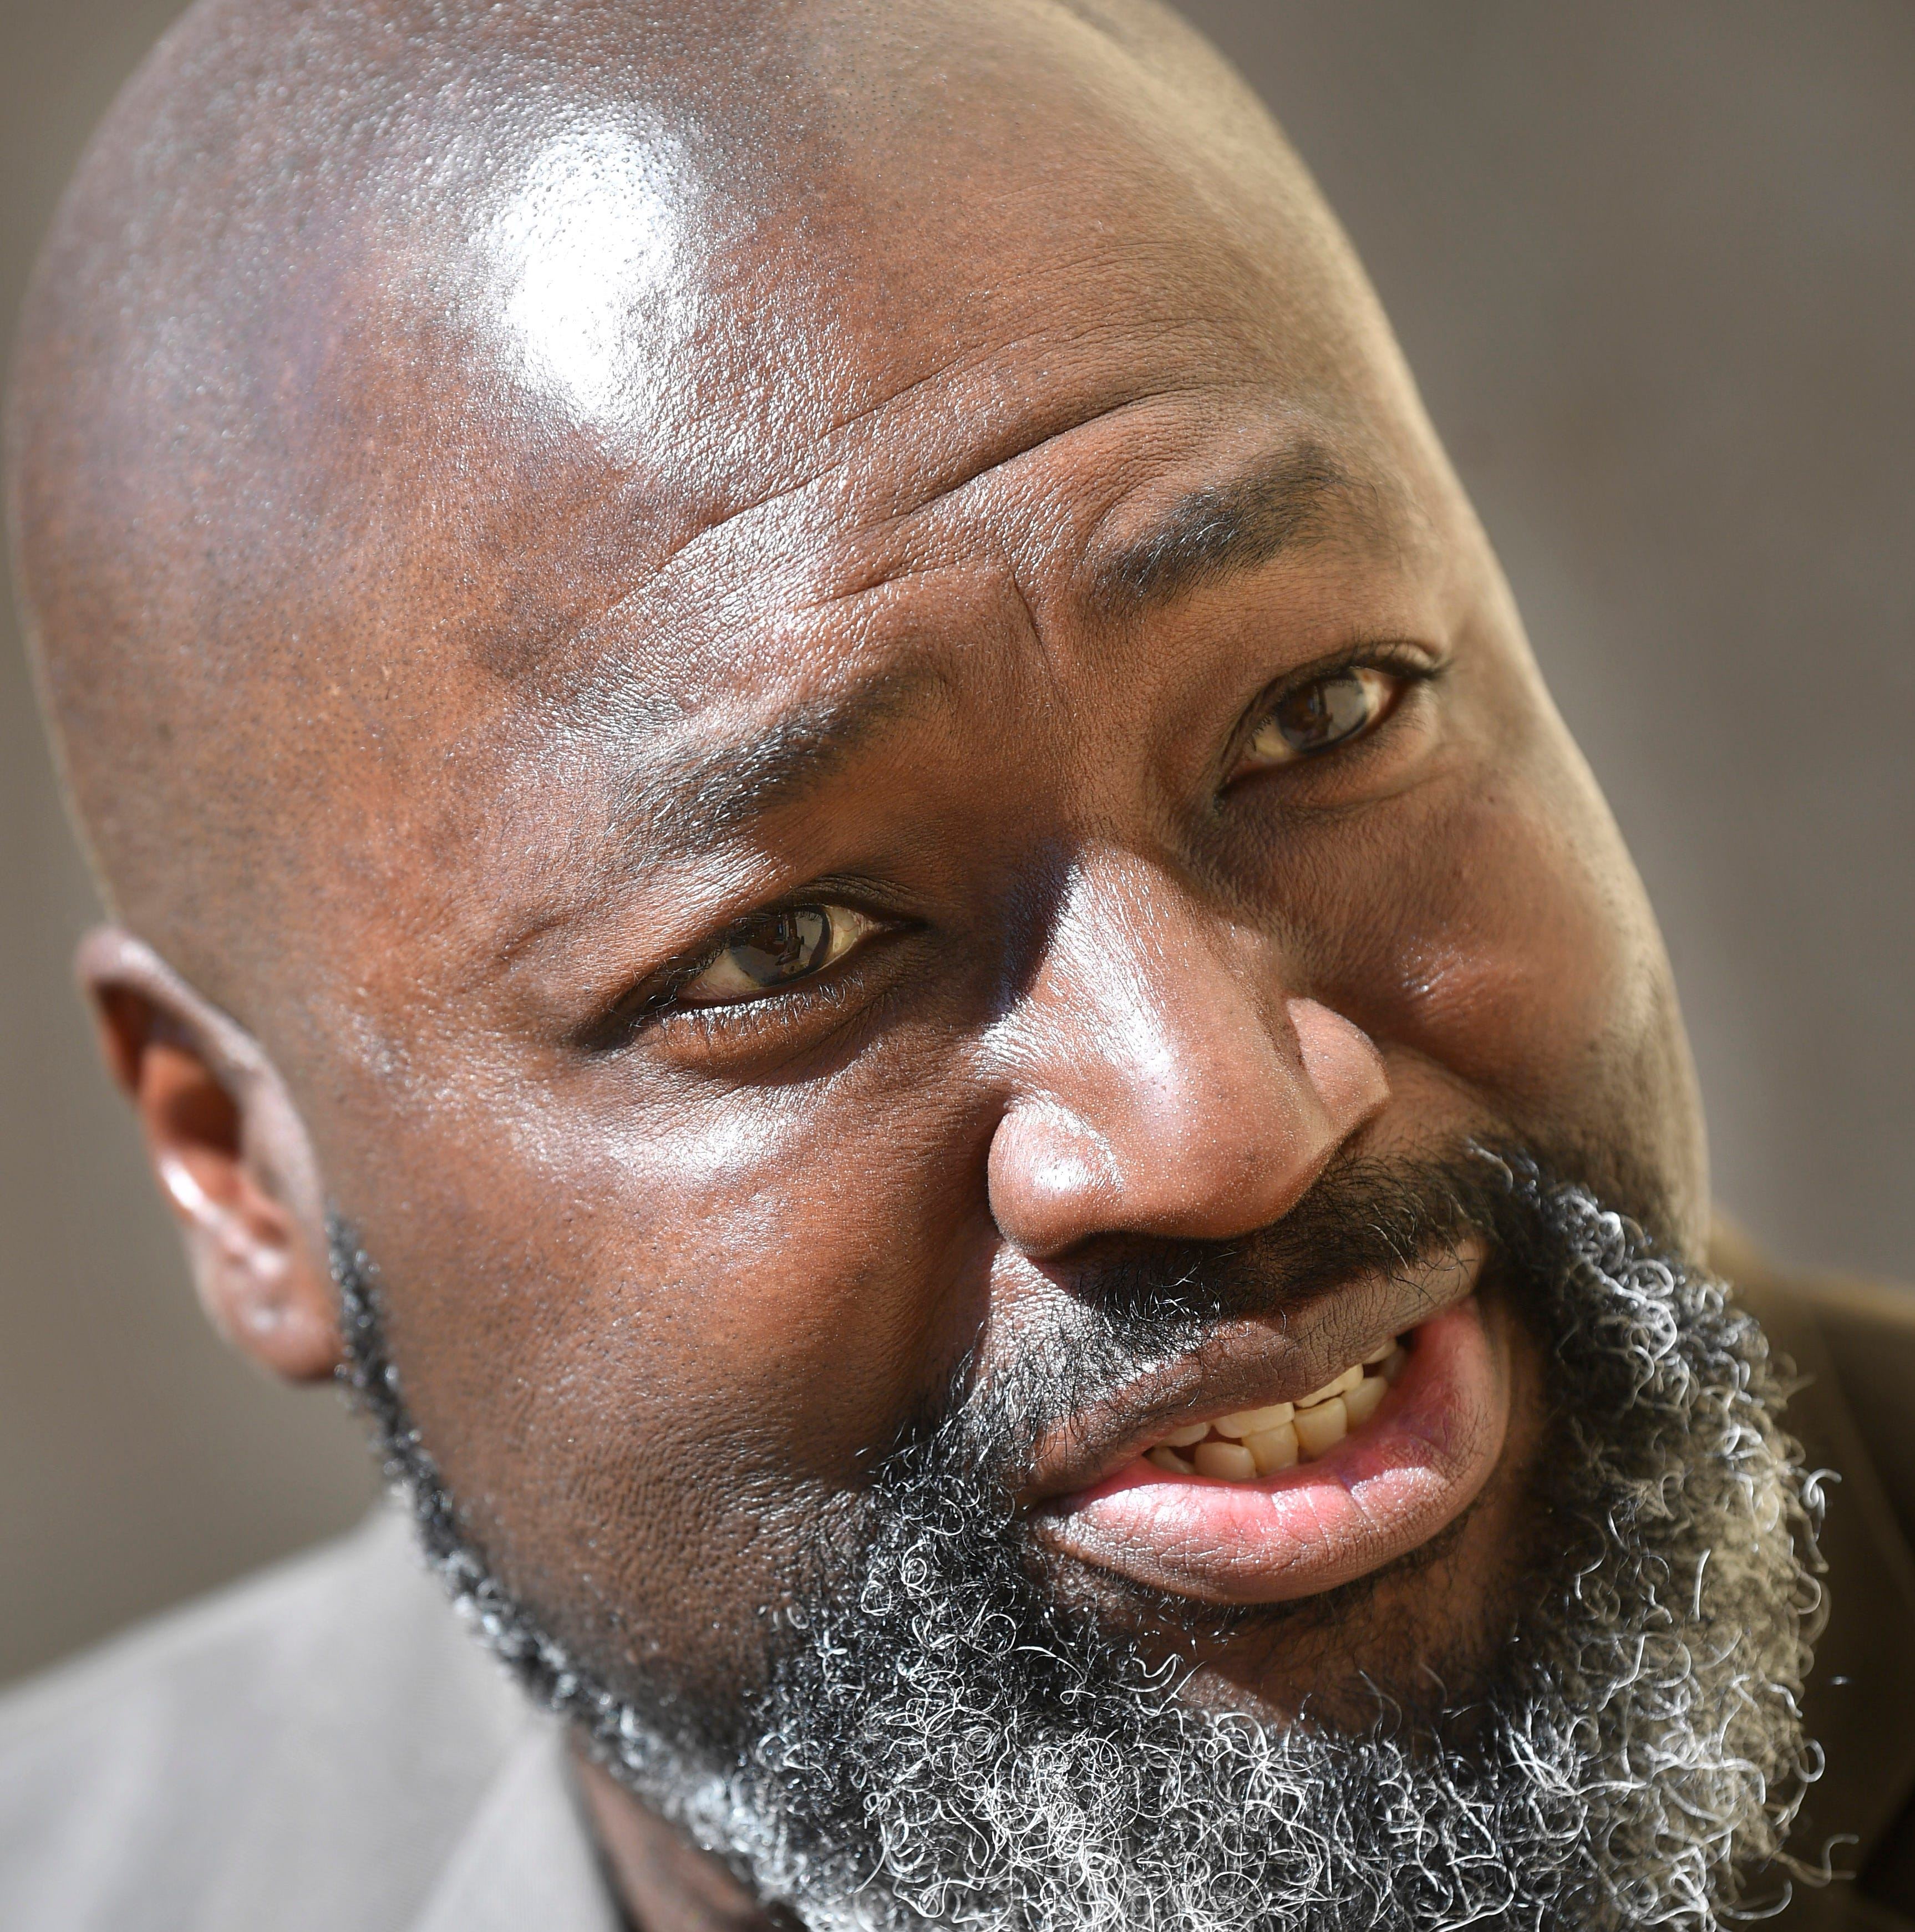 Former prison inmate Matthew Charles has found a home in Nashville